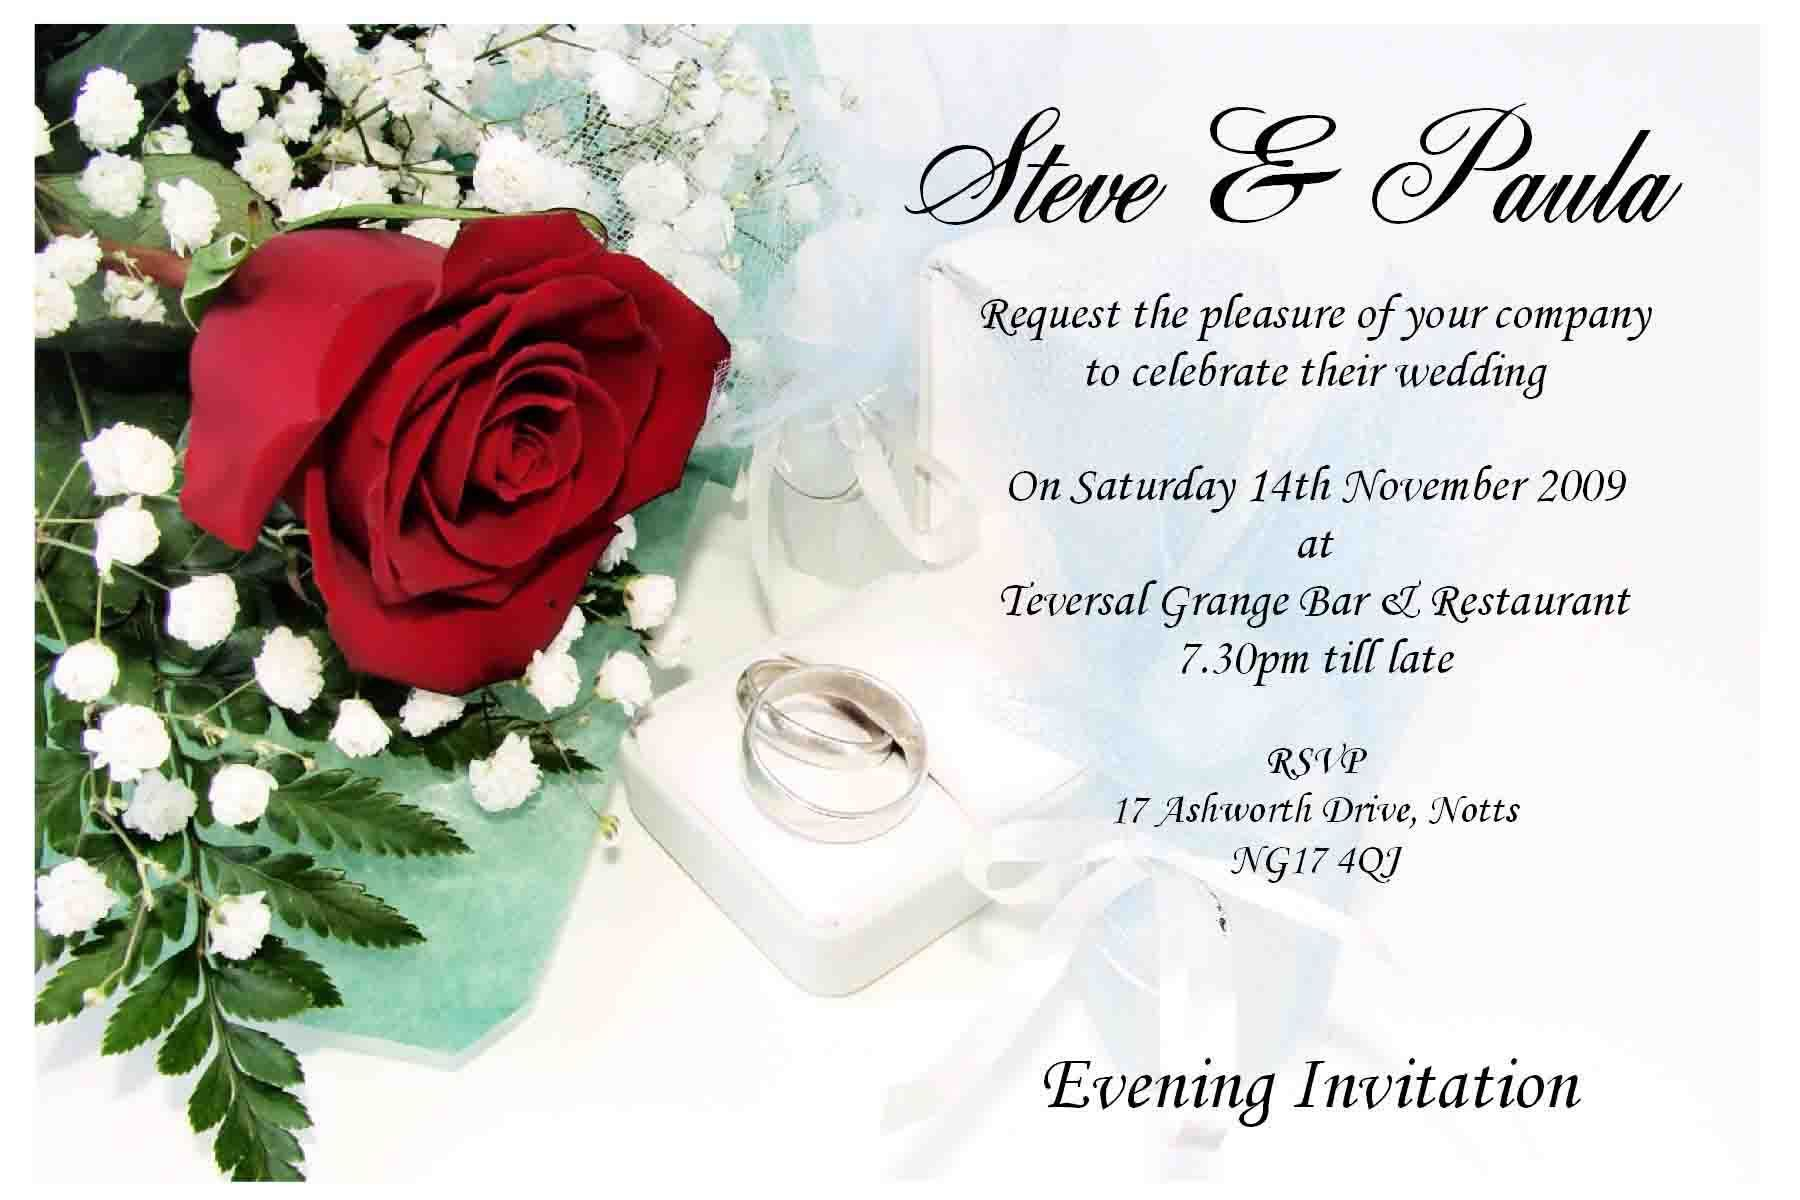 Invitation Cards For Wedding: Contoh-wedding-invitation-card